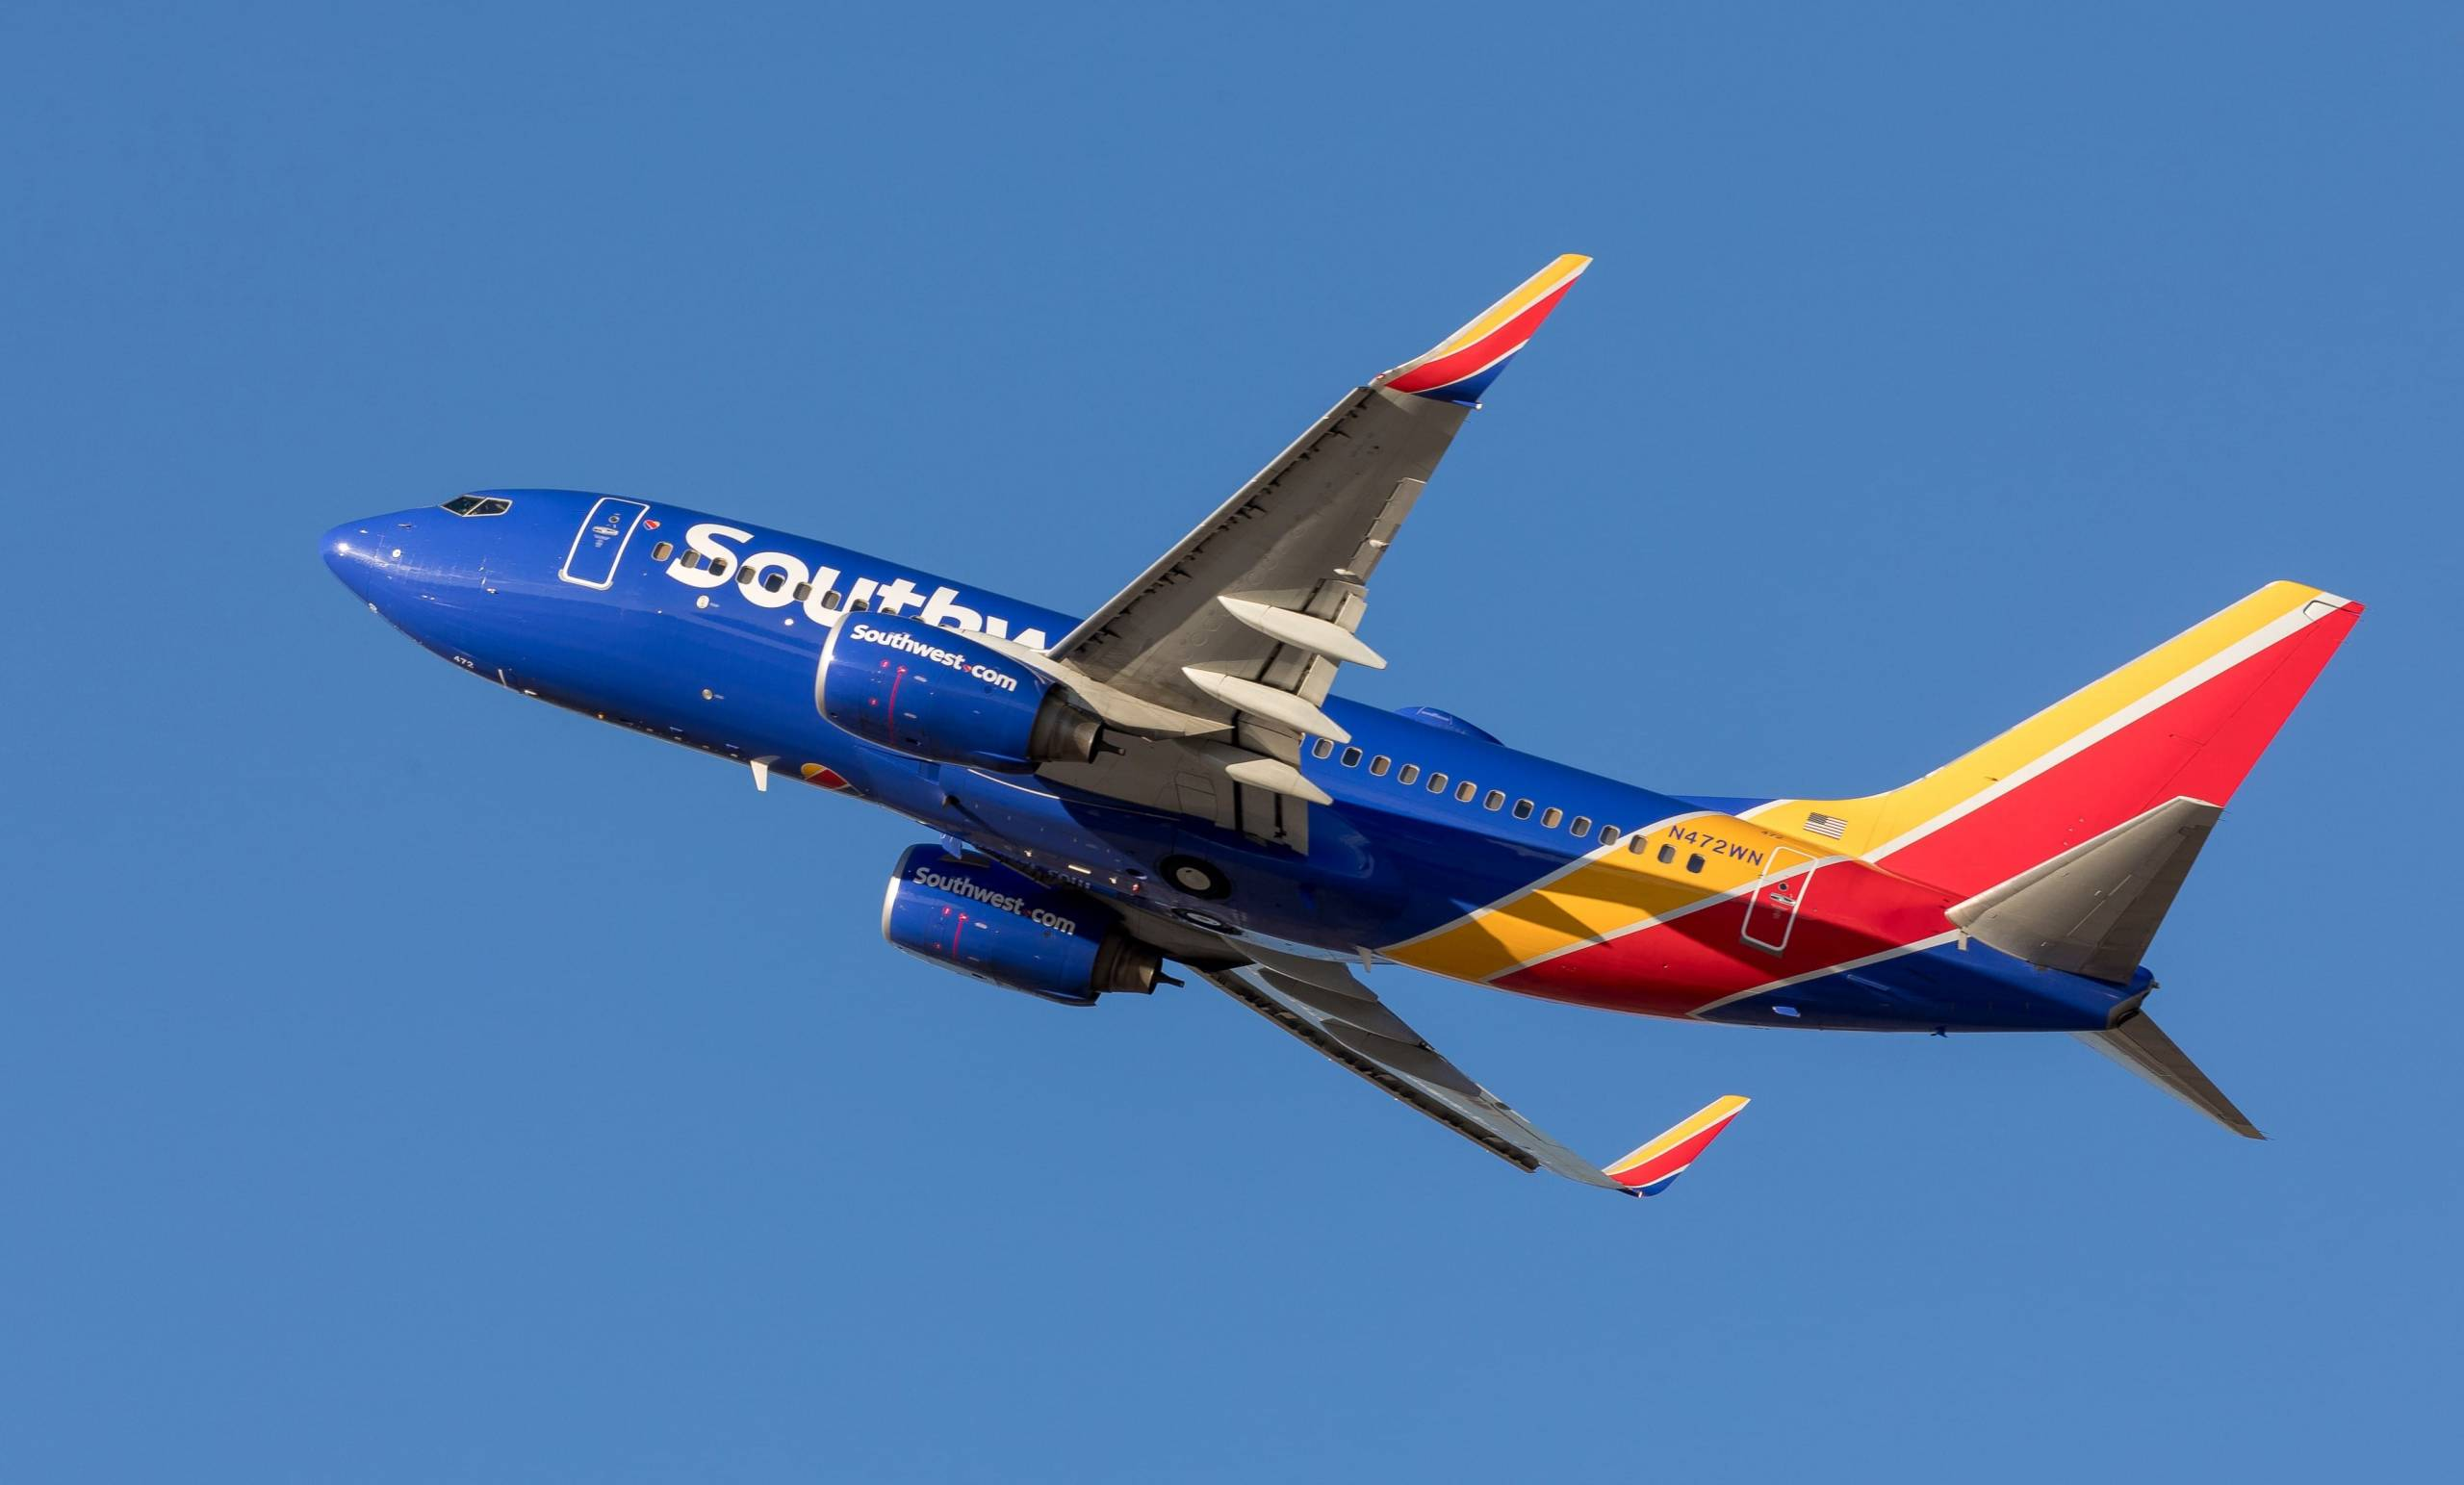 Get Away with a $250 Southwest Airlines Gift Card